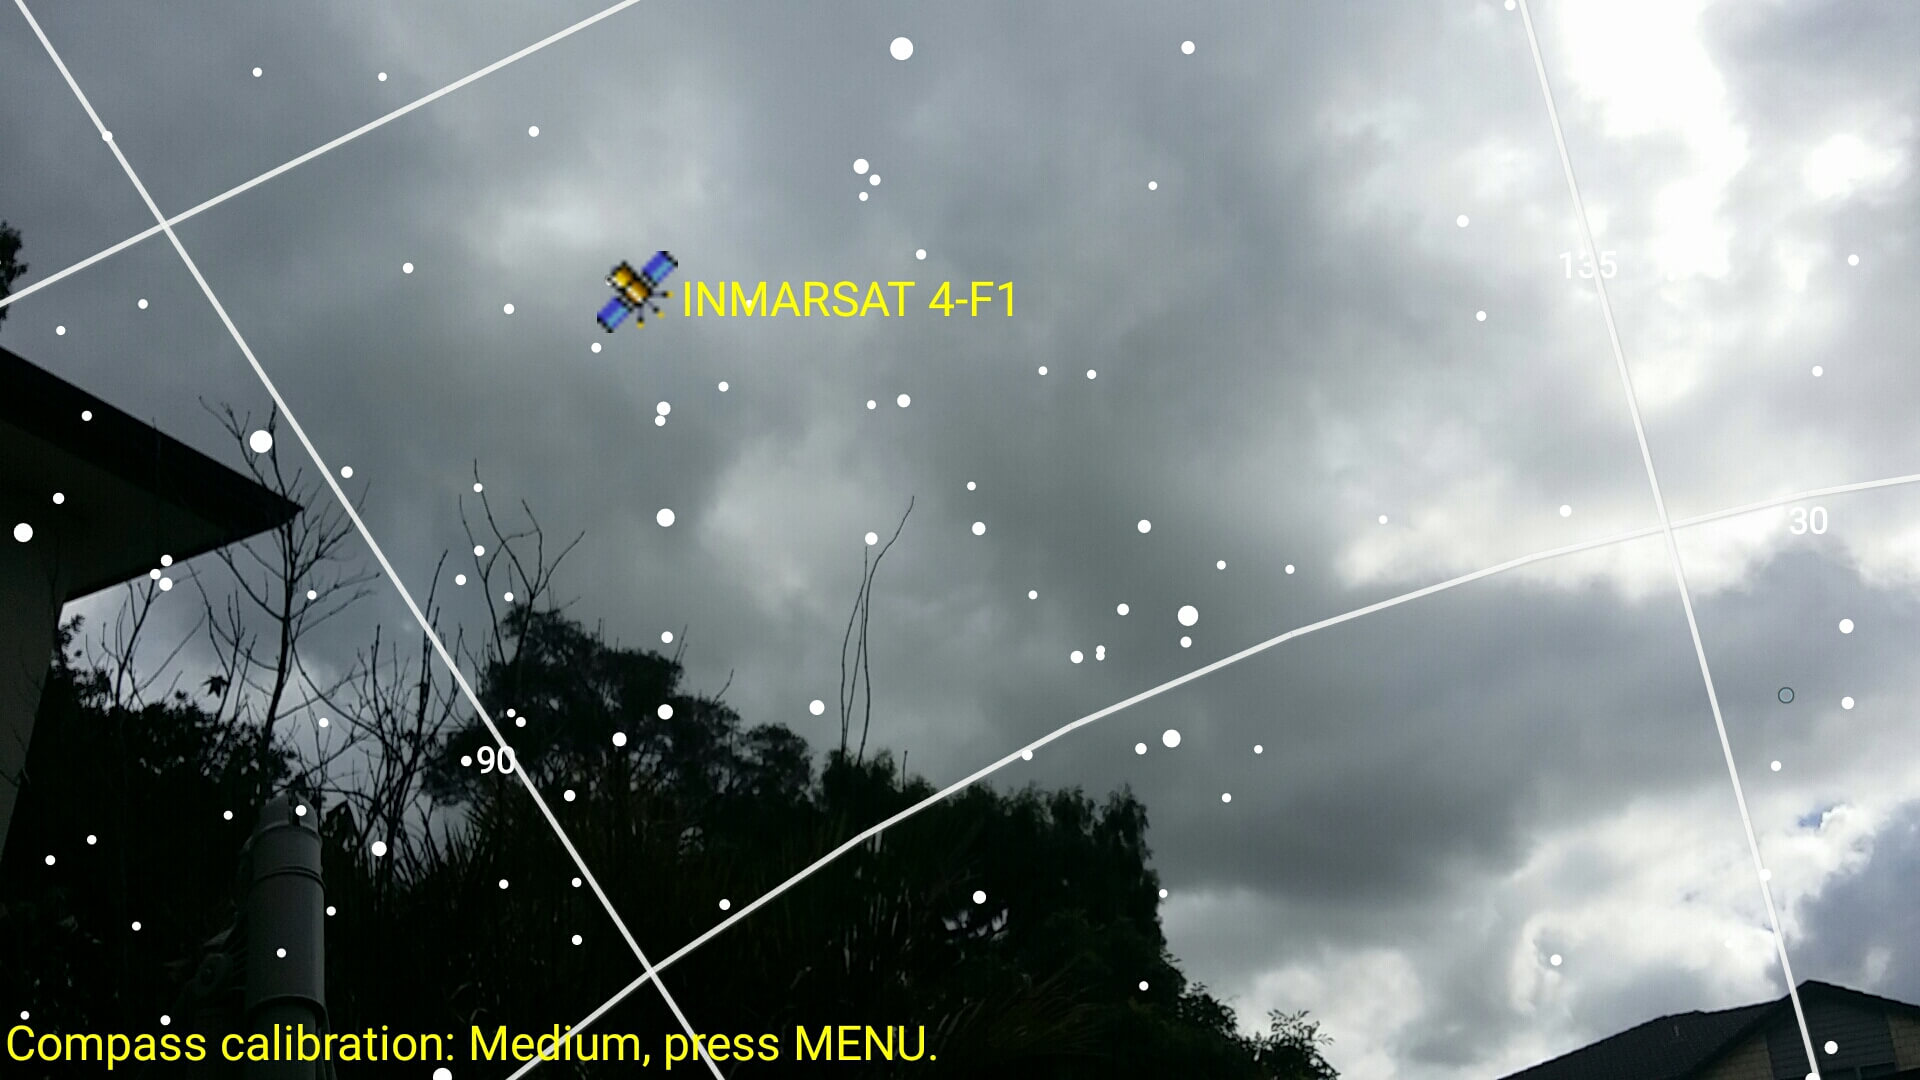 Finding the satellite position in the sky with the Android App